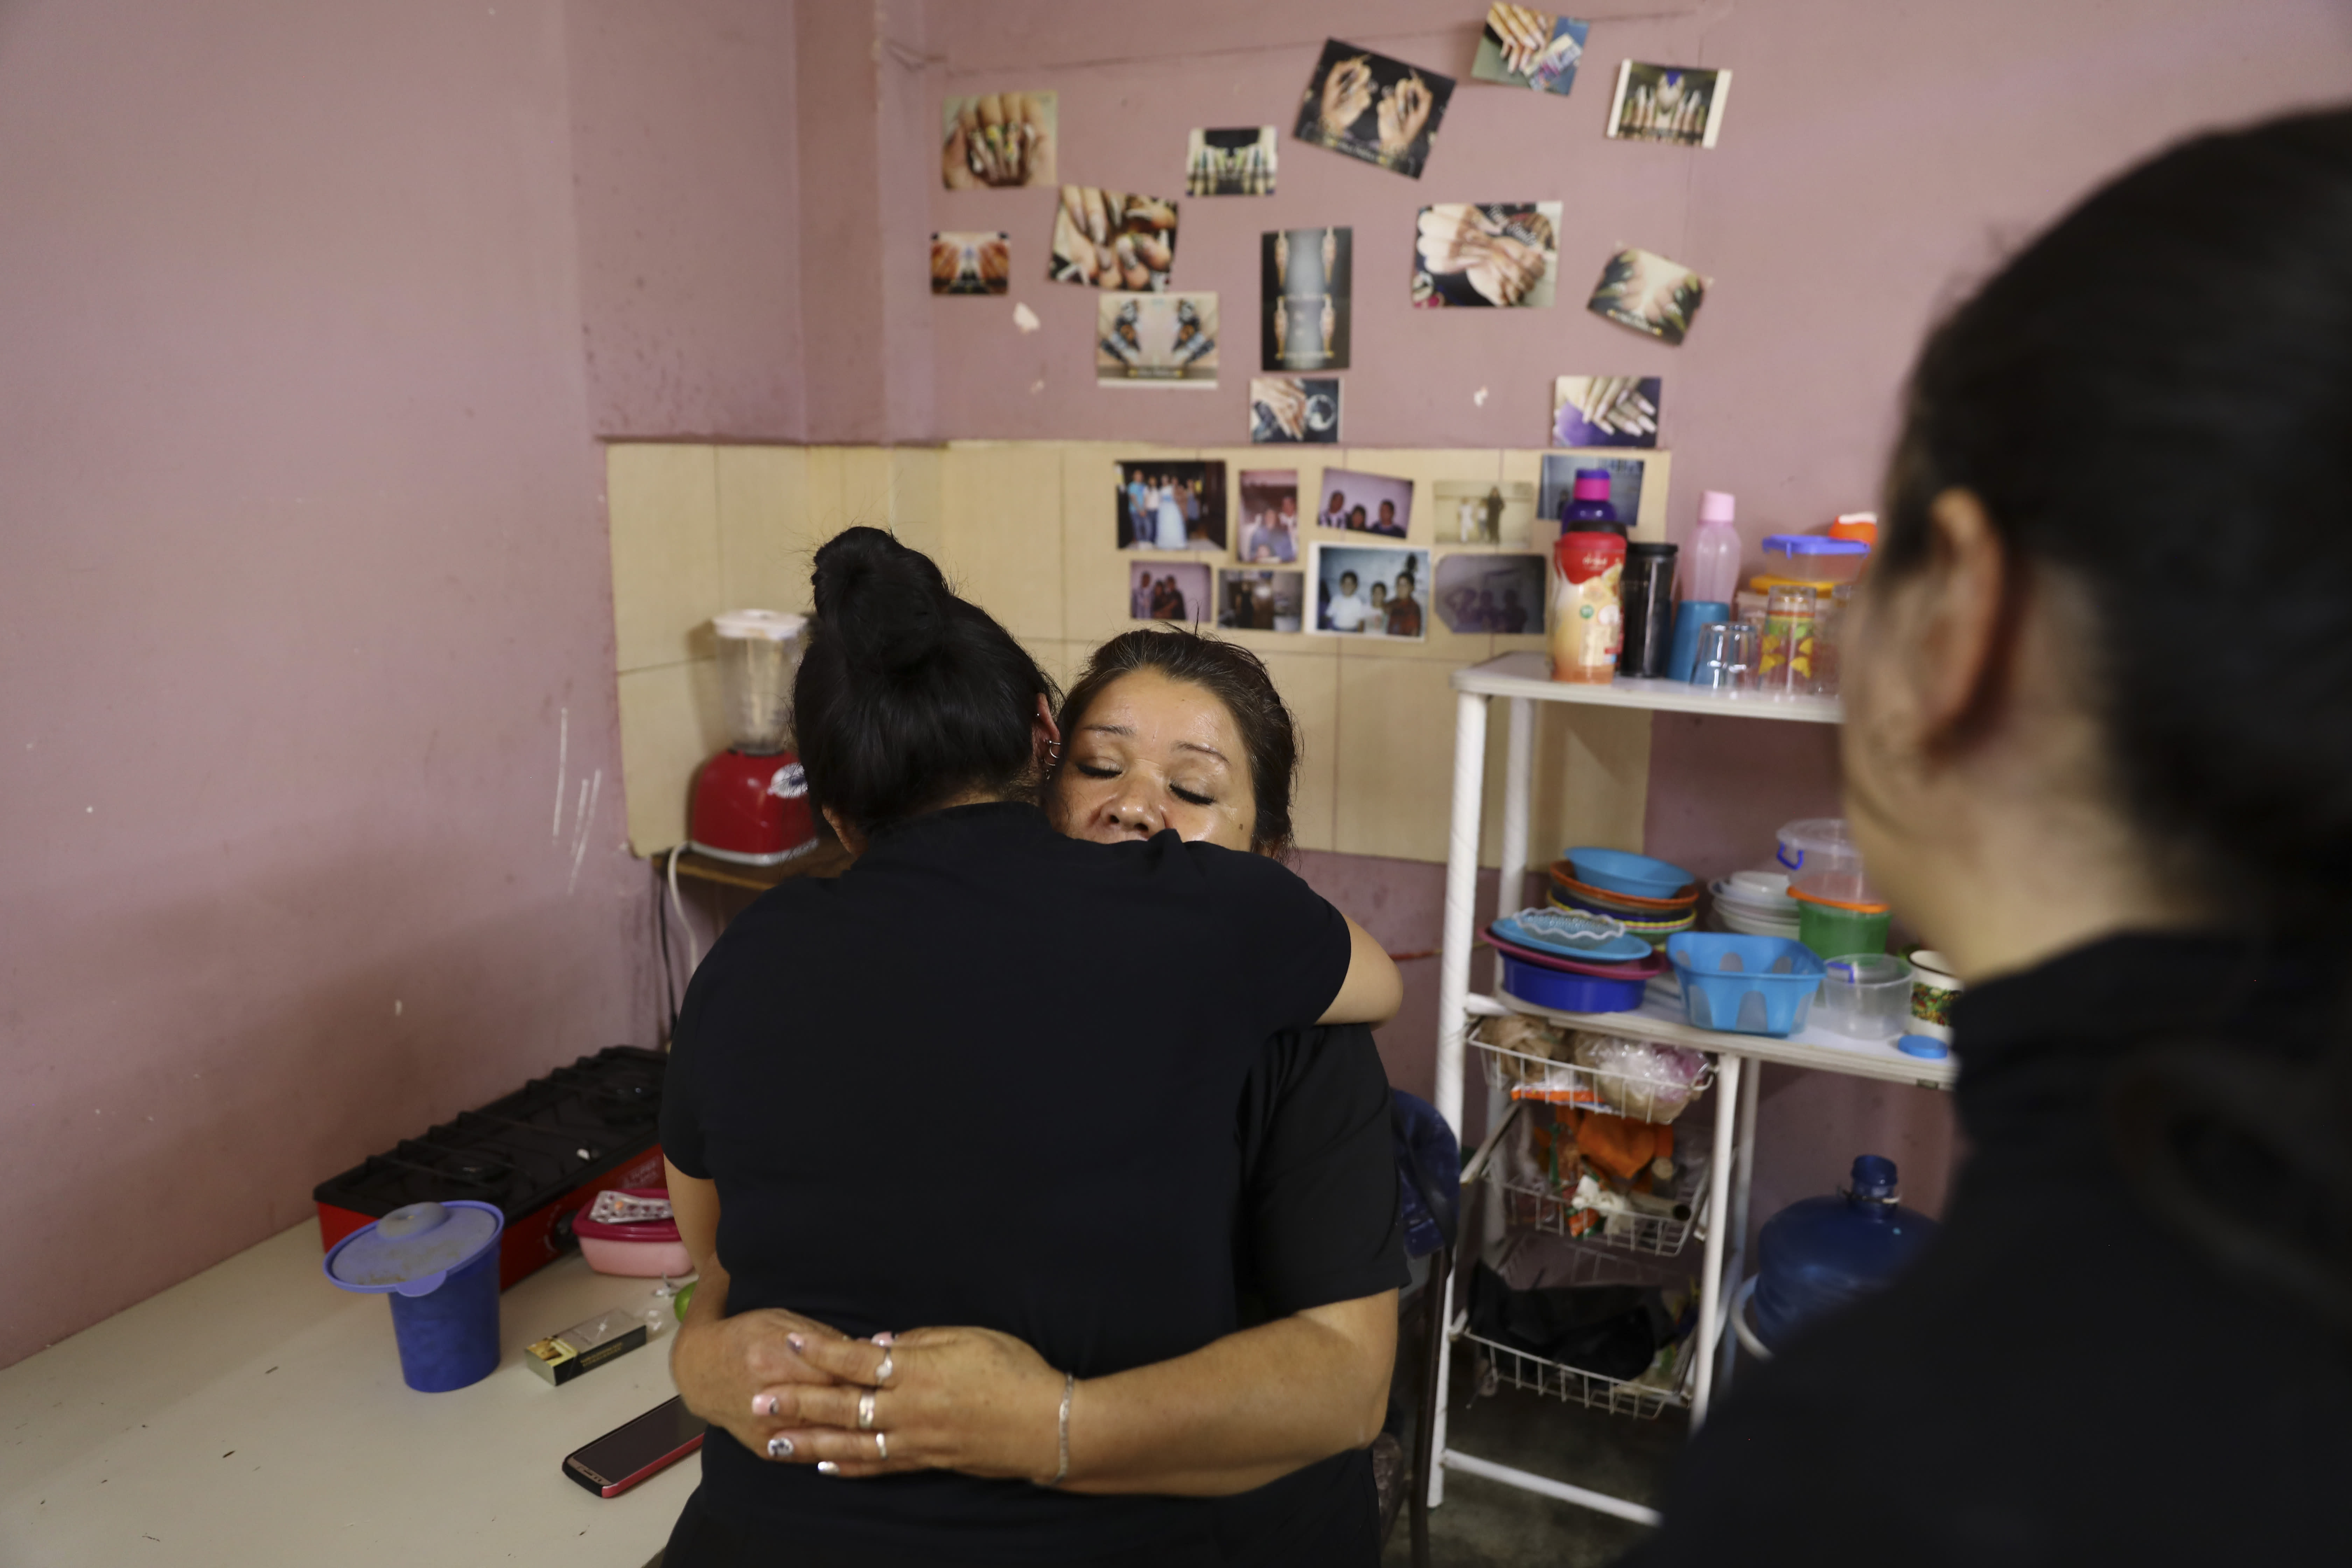 Rosa Alba Santoyo is embraced by a woman giving her condolences the day after she lost three of her adult children in an attack on the drug rehabilitation center where they were being treated, at her home in Irapuato, Mexico, Thursday, July 2, 2020. Gunmen burst into the drug rehabilitation center and opened fire Wednesday, killing 24 people and wounding seven, authorities said. (AP Photo/Eduardo Verdugo)